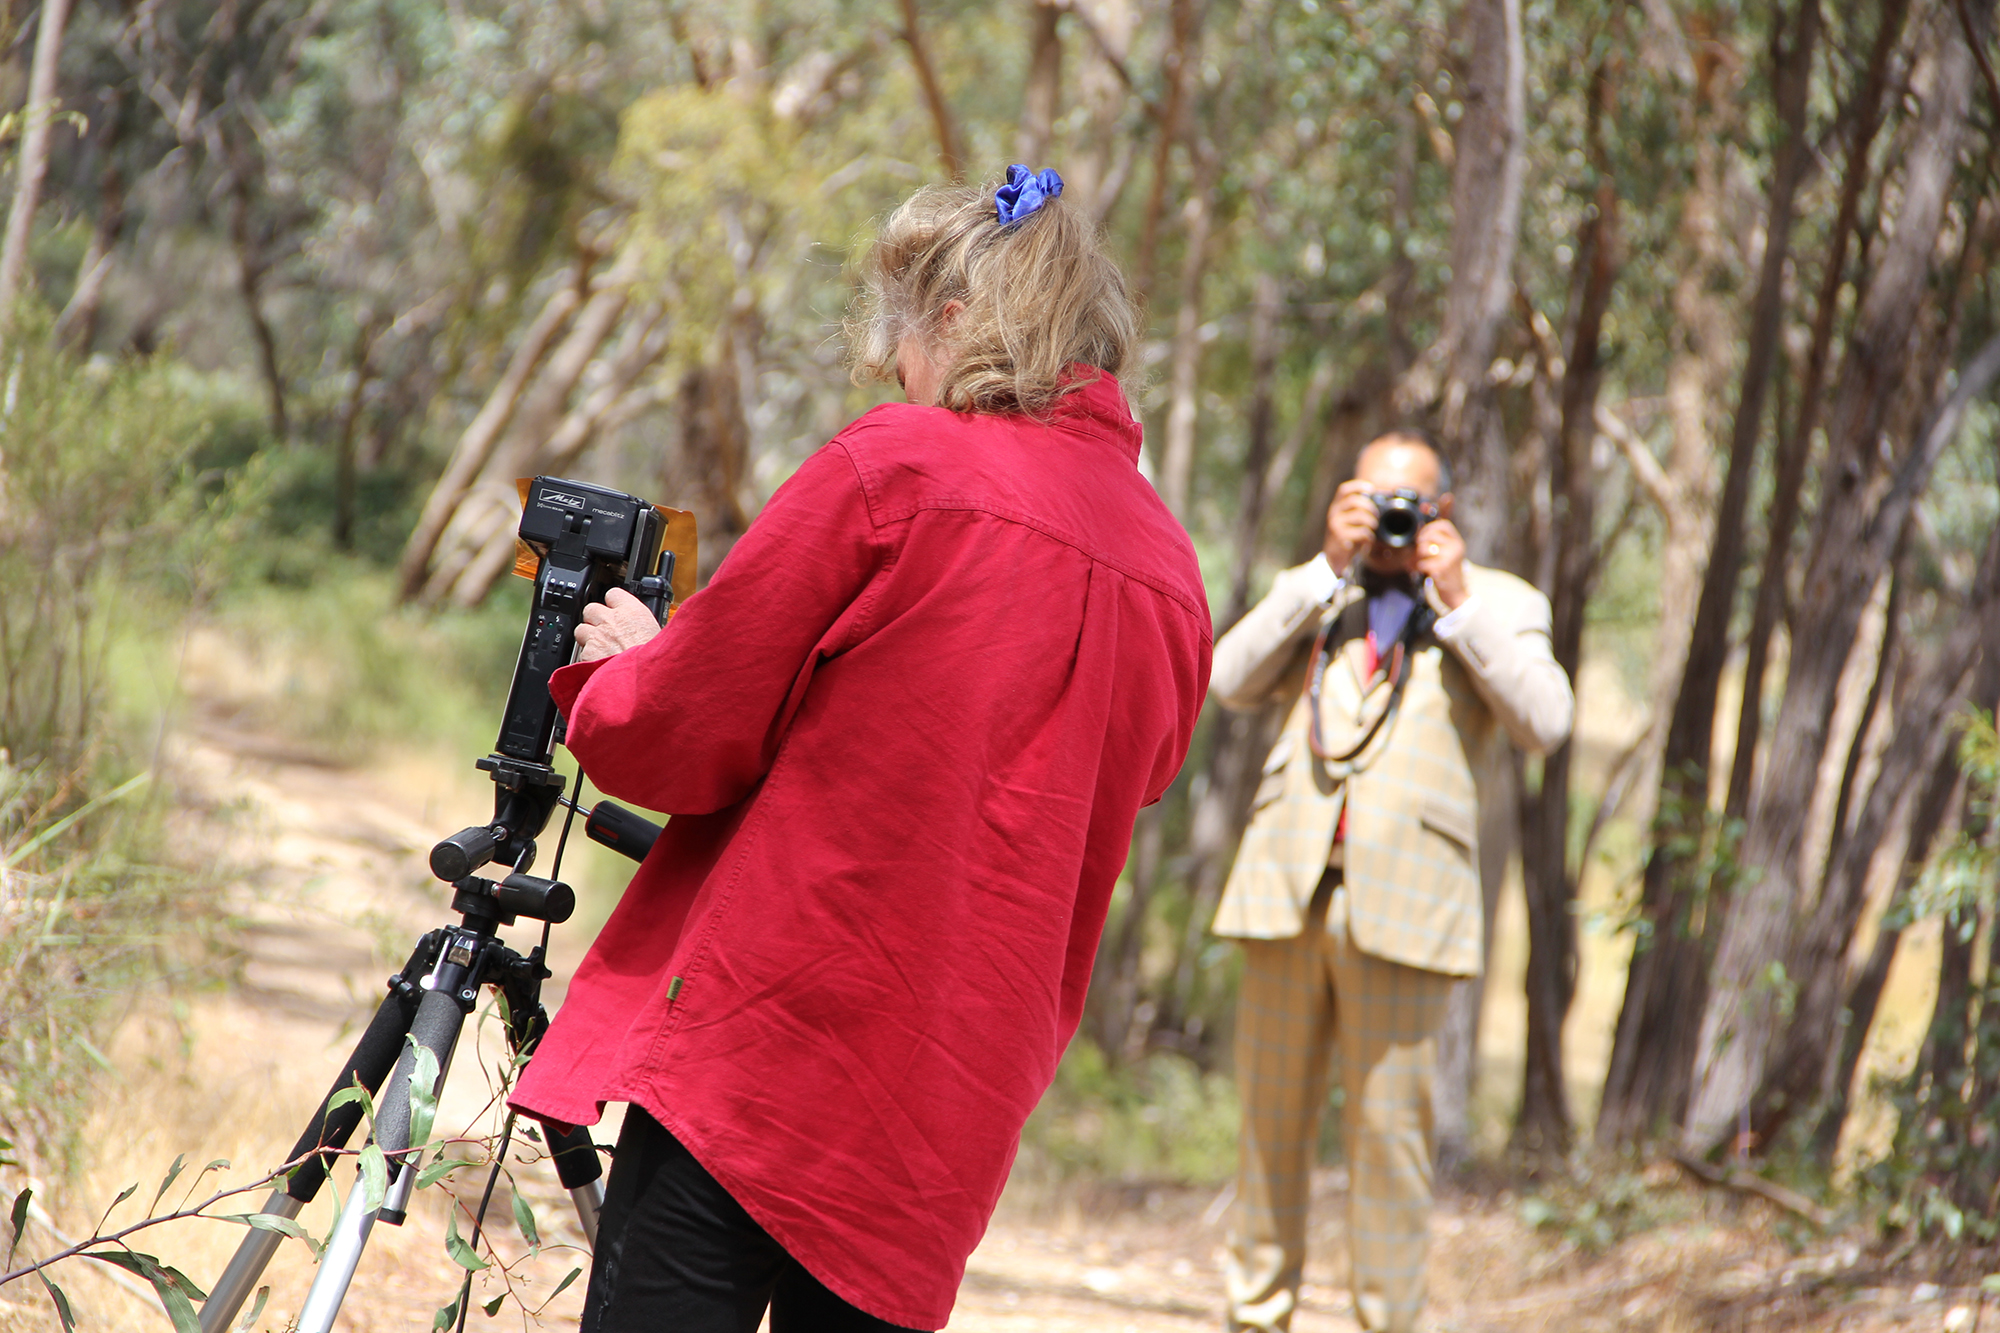 Photographic documentation during the photo-shoot at Fryerstown, Victoria, for the artwork Bespoke. Image courtesy of Marion Williams.